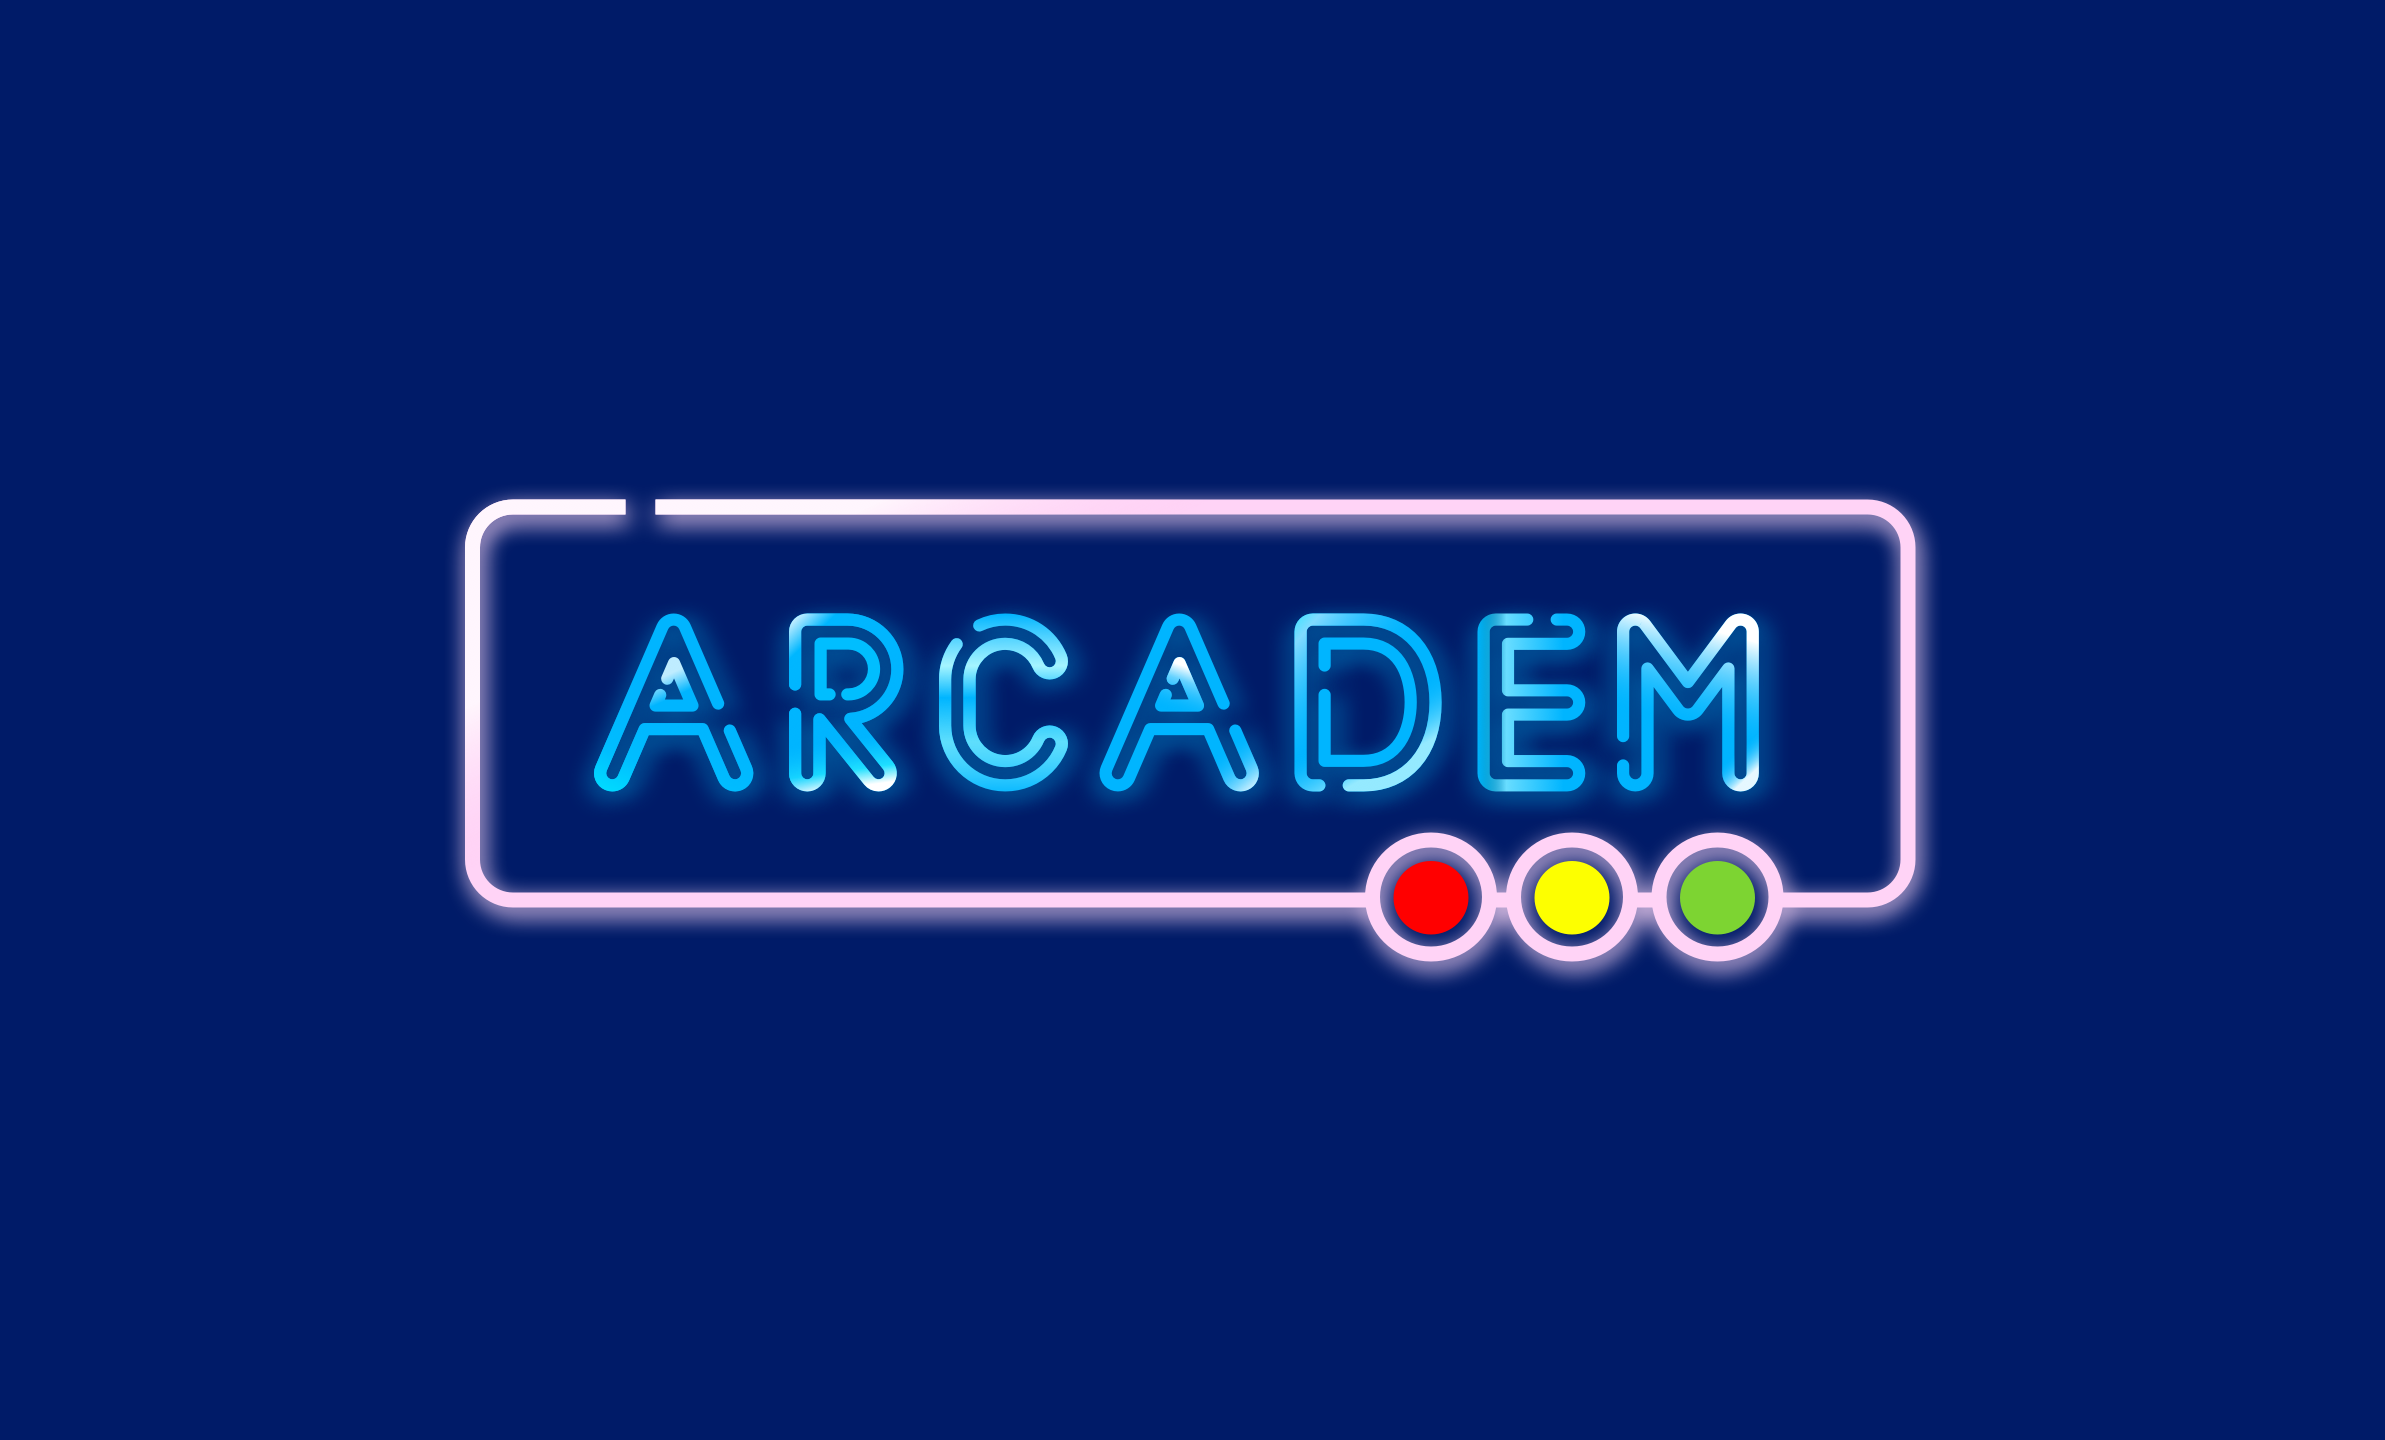 arcadem logo - Brilliant name for an arcade